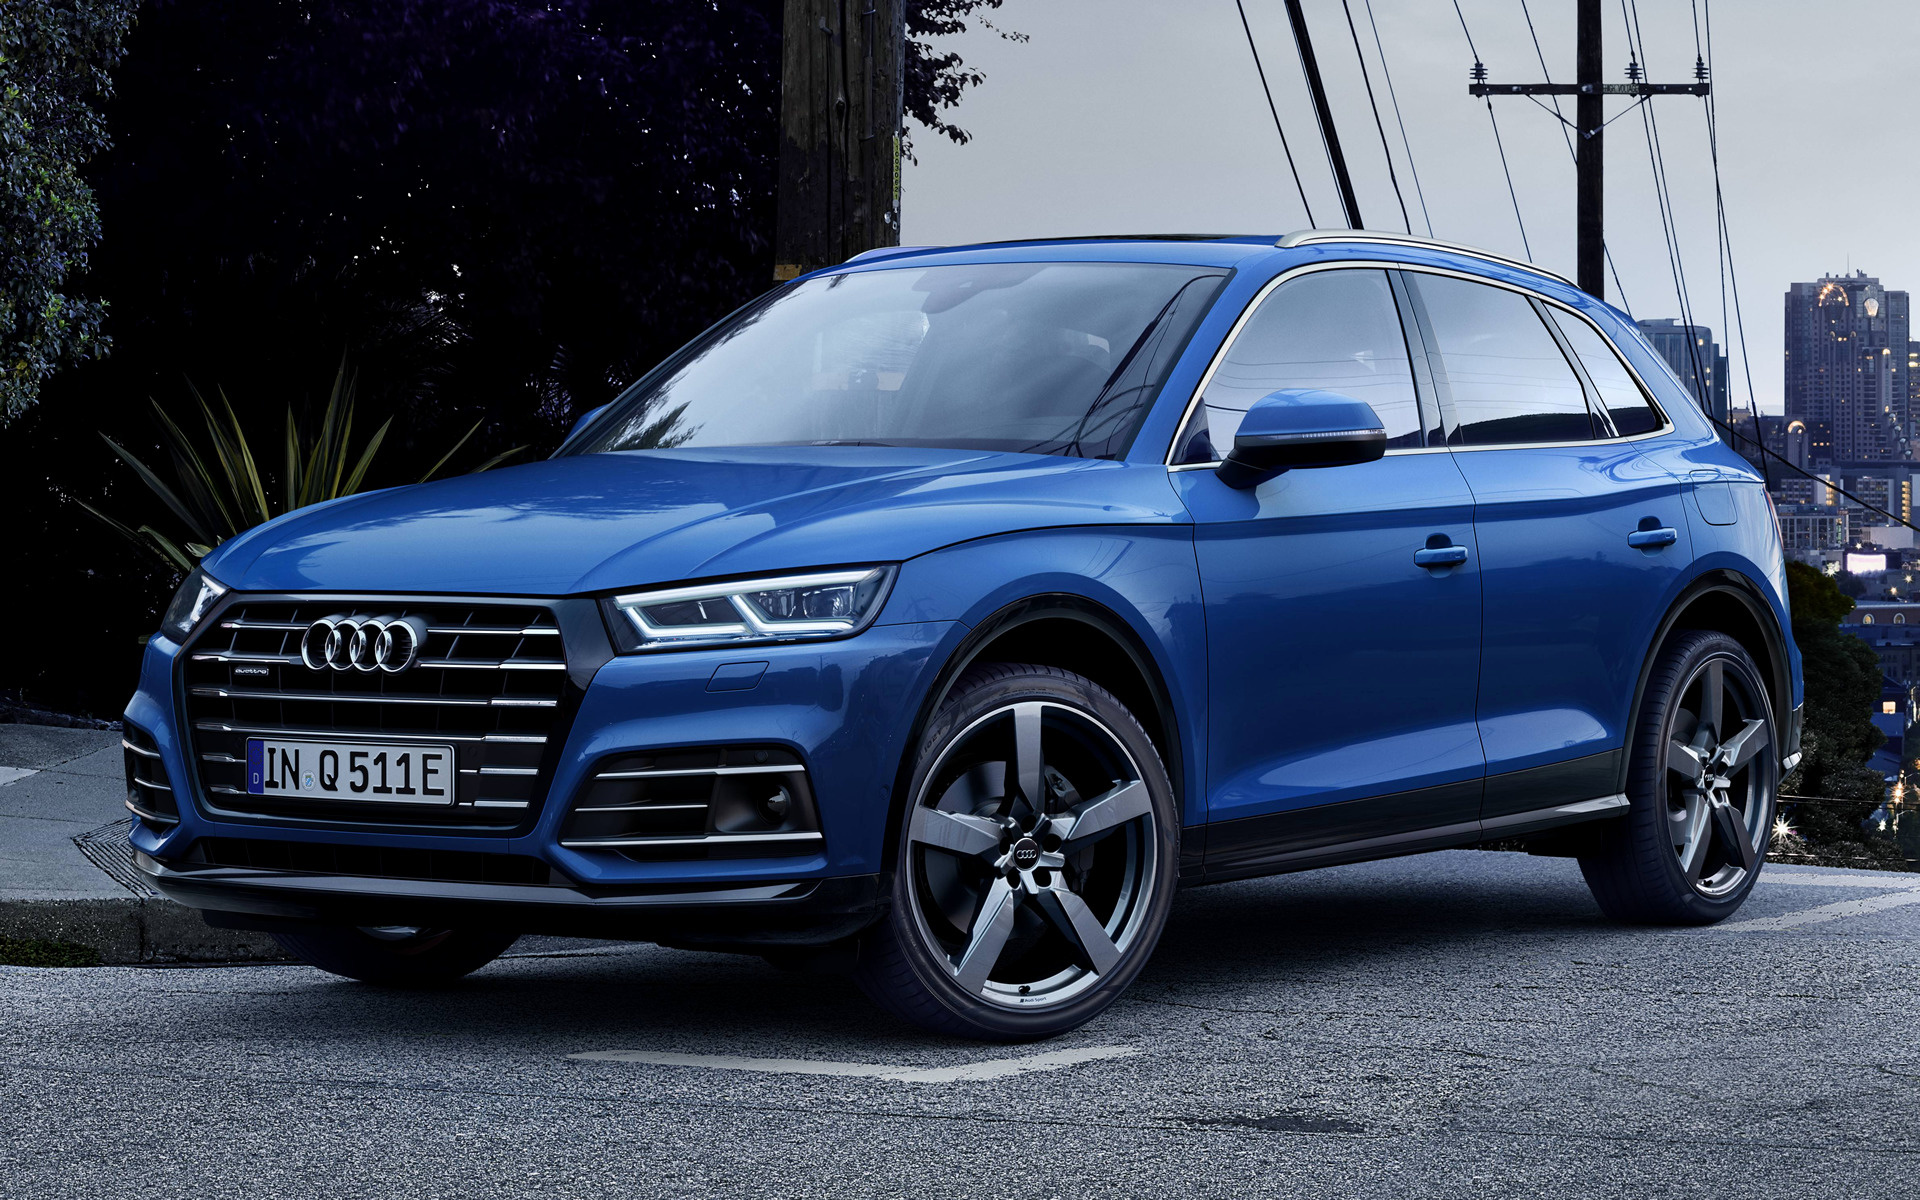 2019 Audi Q5 Plug-In Hybrid S line - Wallpapers and HD ...